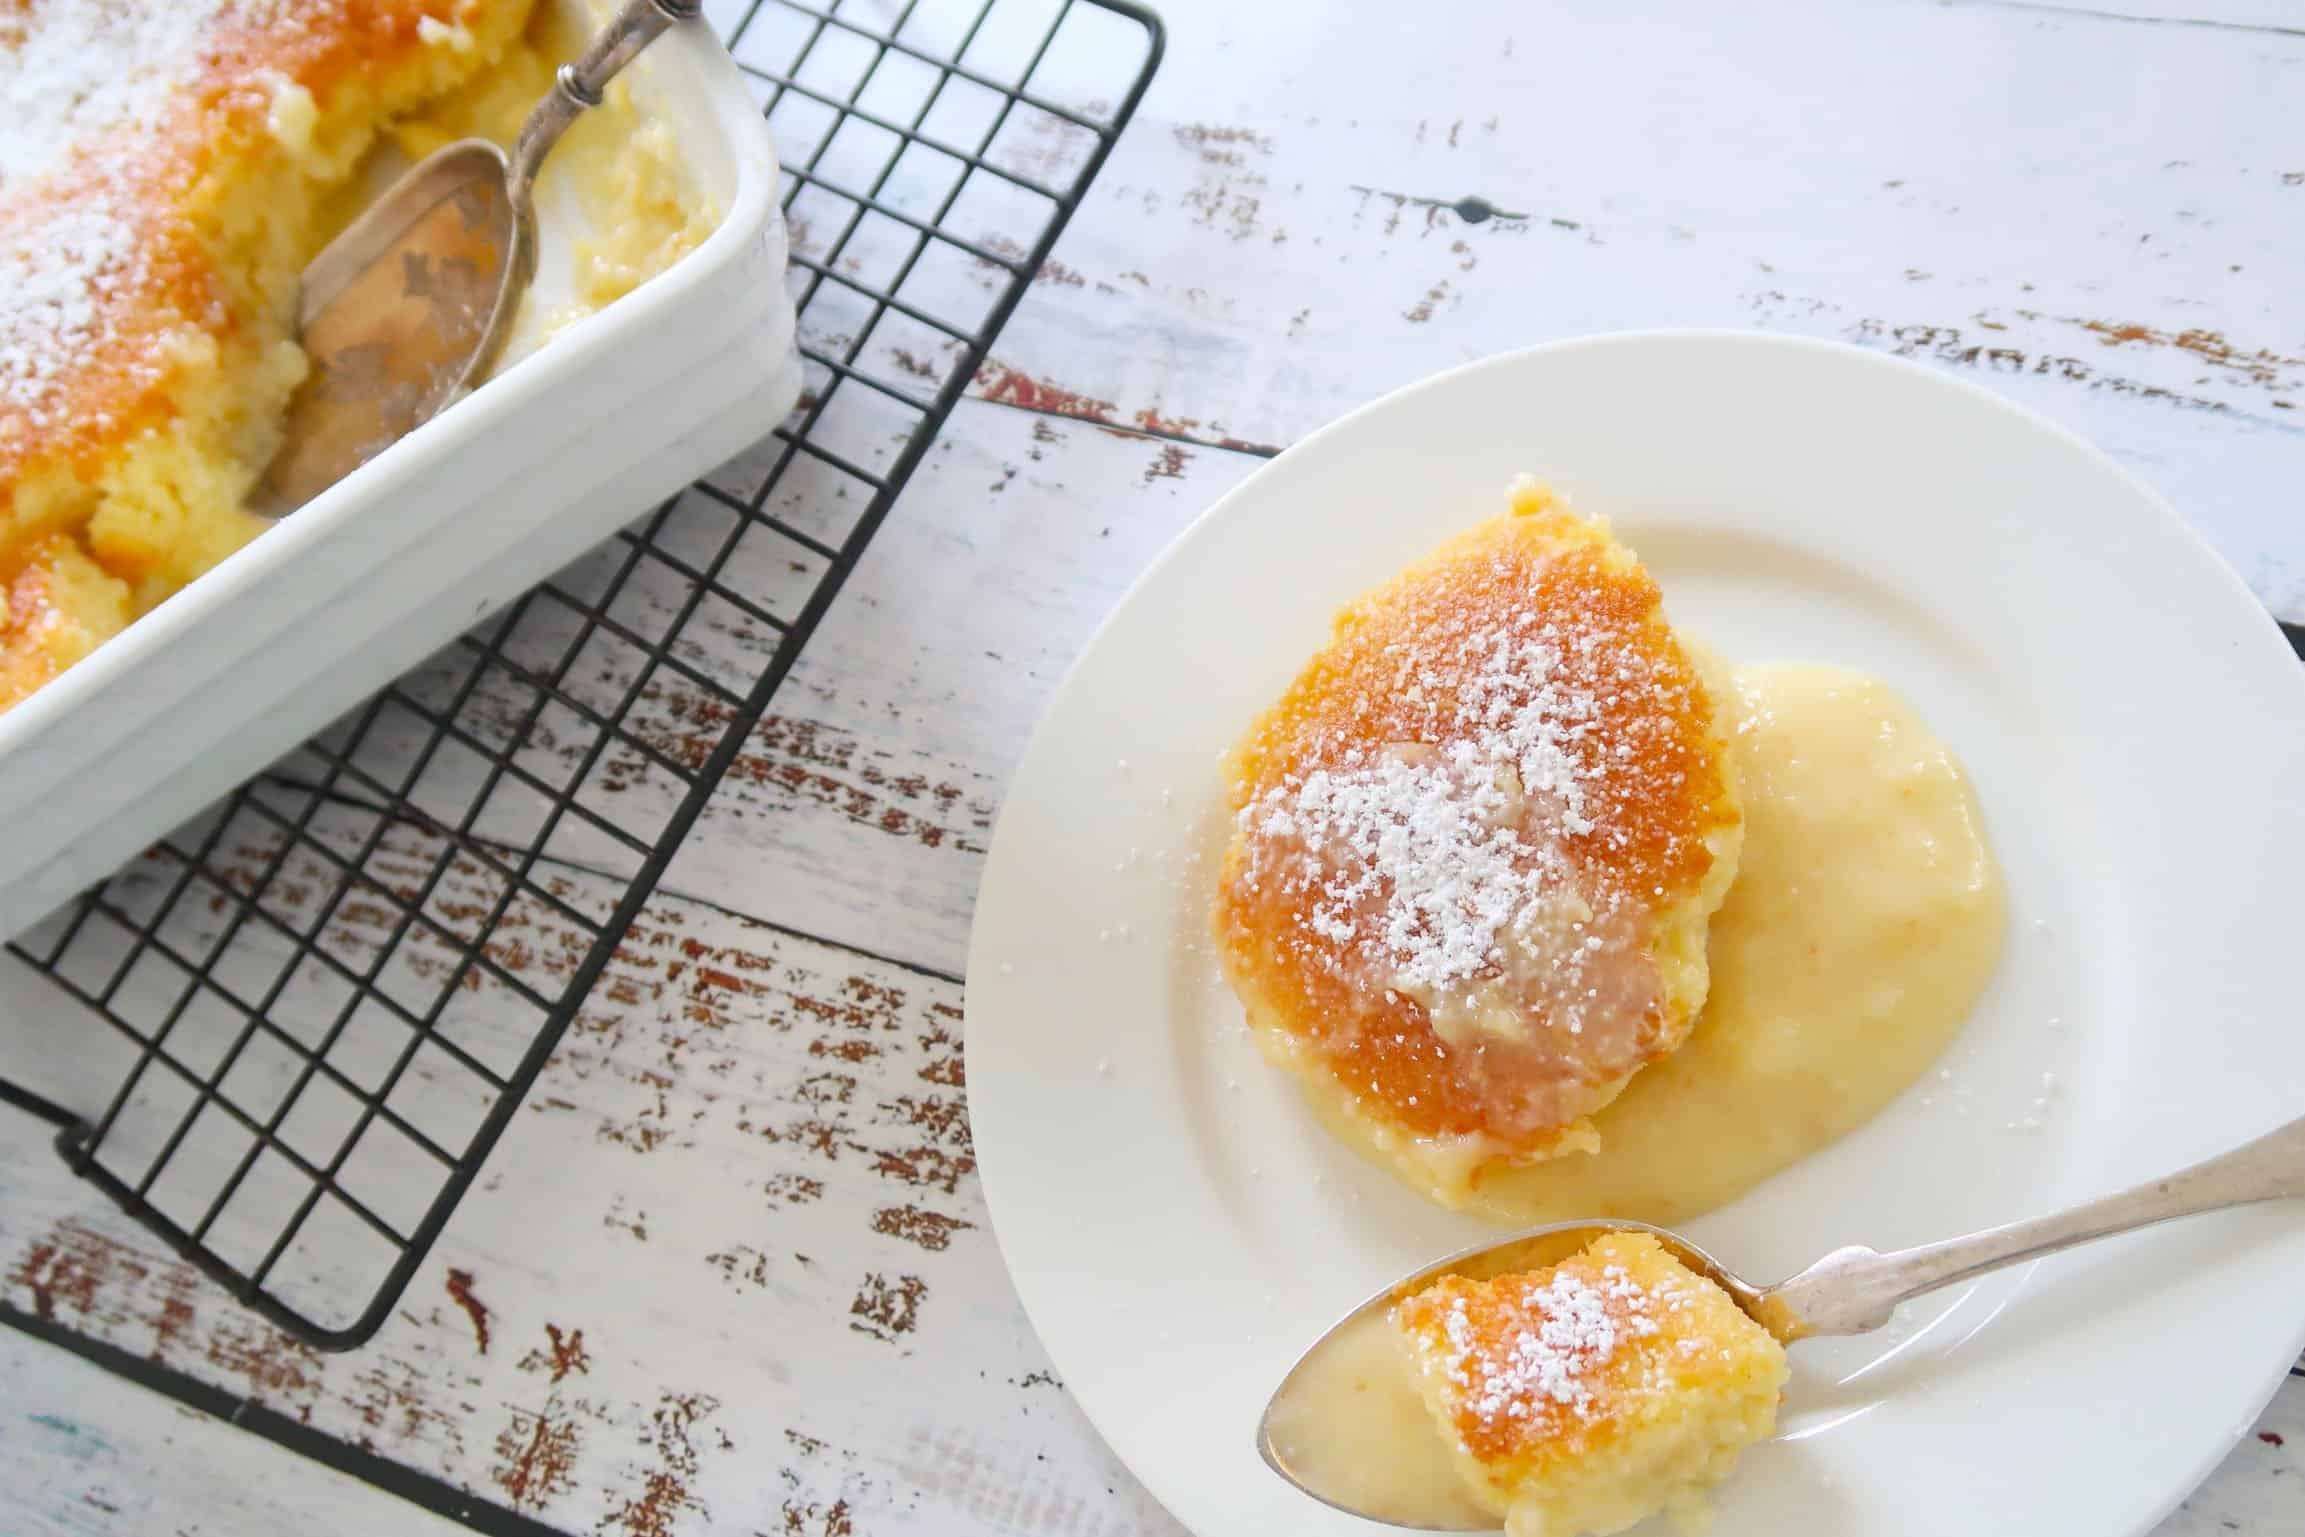 Lemon Delicious Pudding on a white timber board with a side plate and a spoon